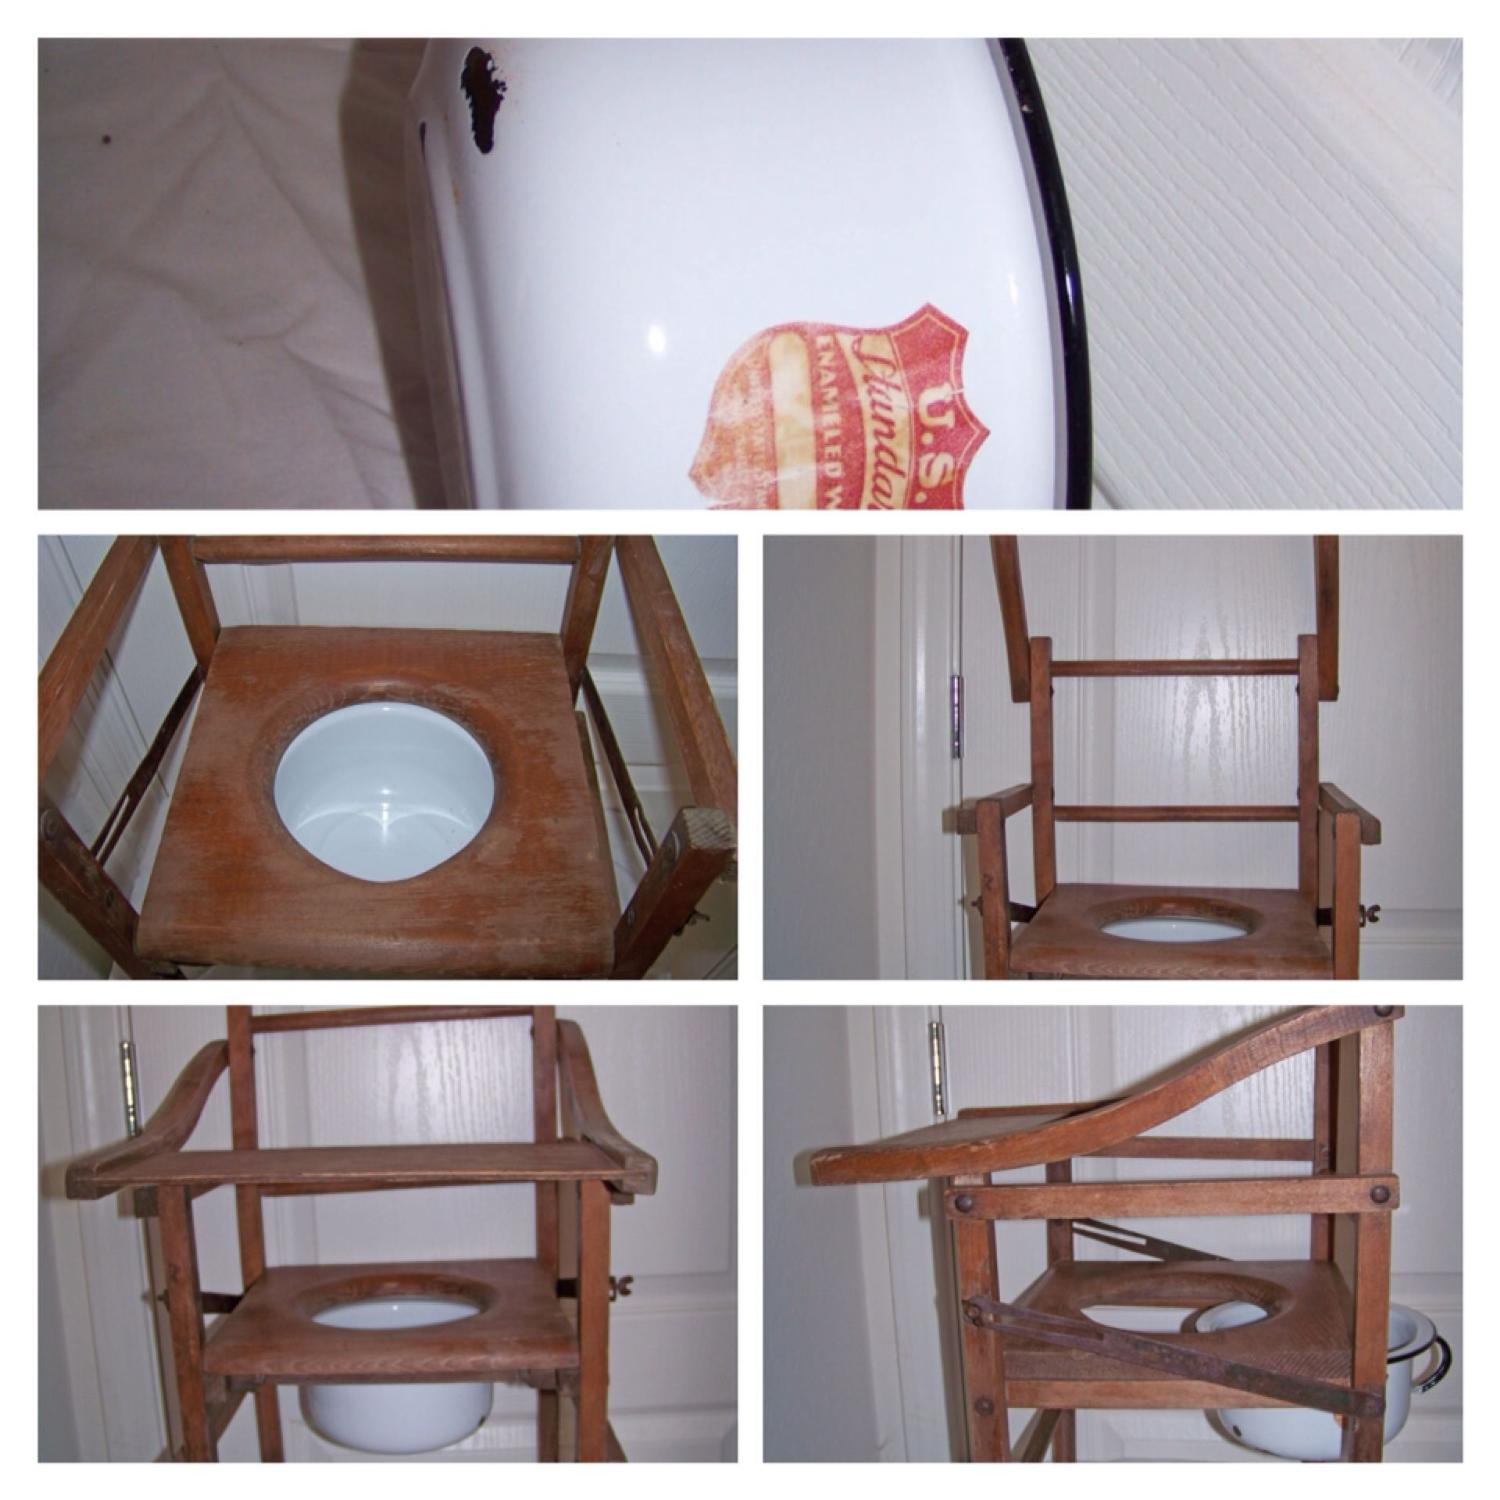 Best Antique Childs Wooden Potty Chair With Tray And Original Enamel Pot  for sale in Norterra, Arizona for 2017 - Best Antique Childs Wooden Potty Chair With Tray And Original